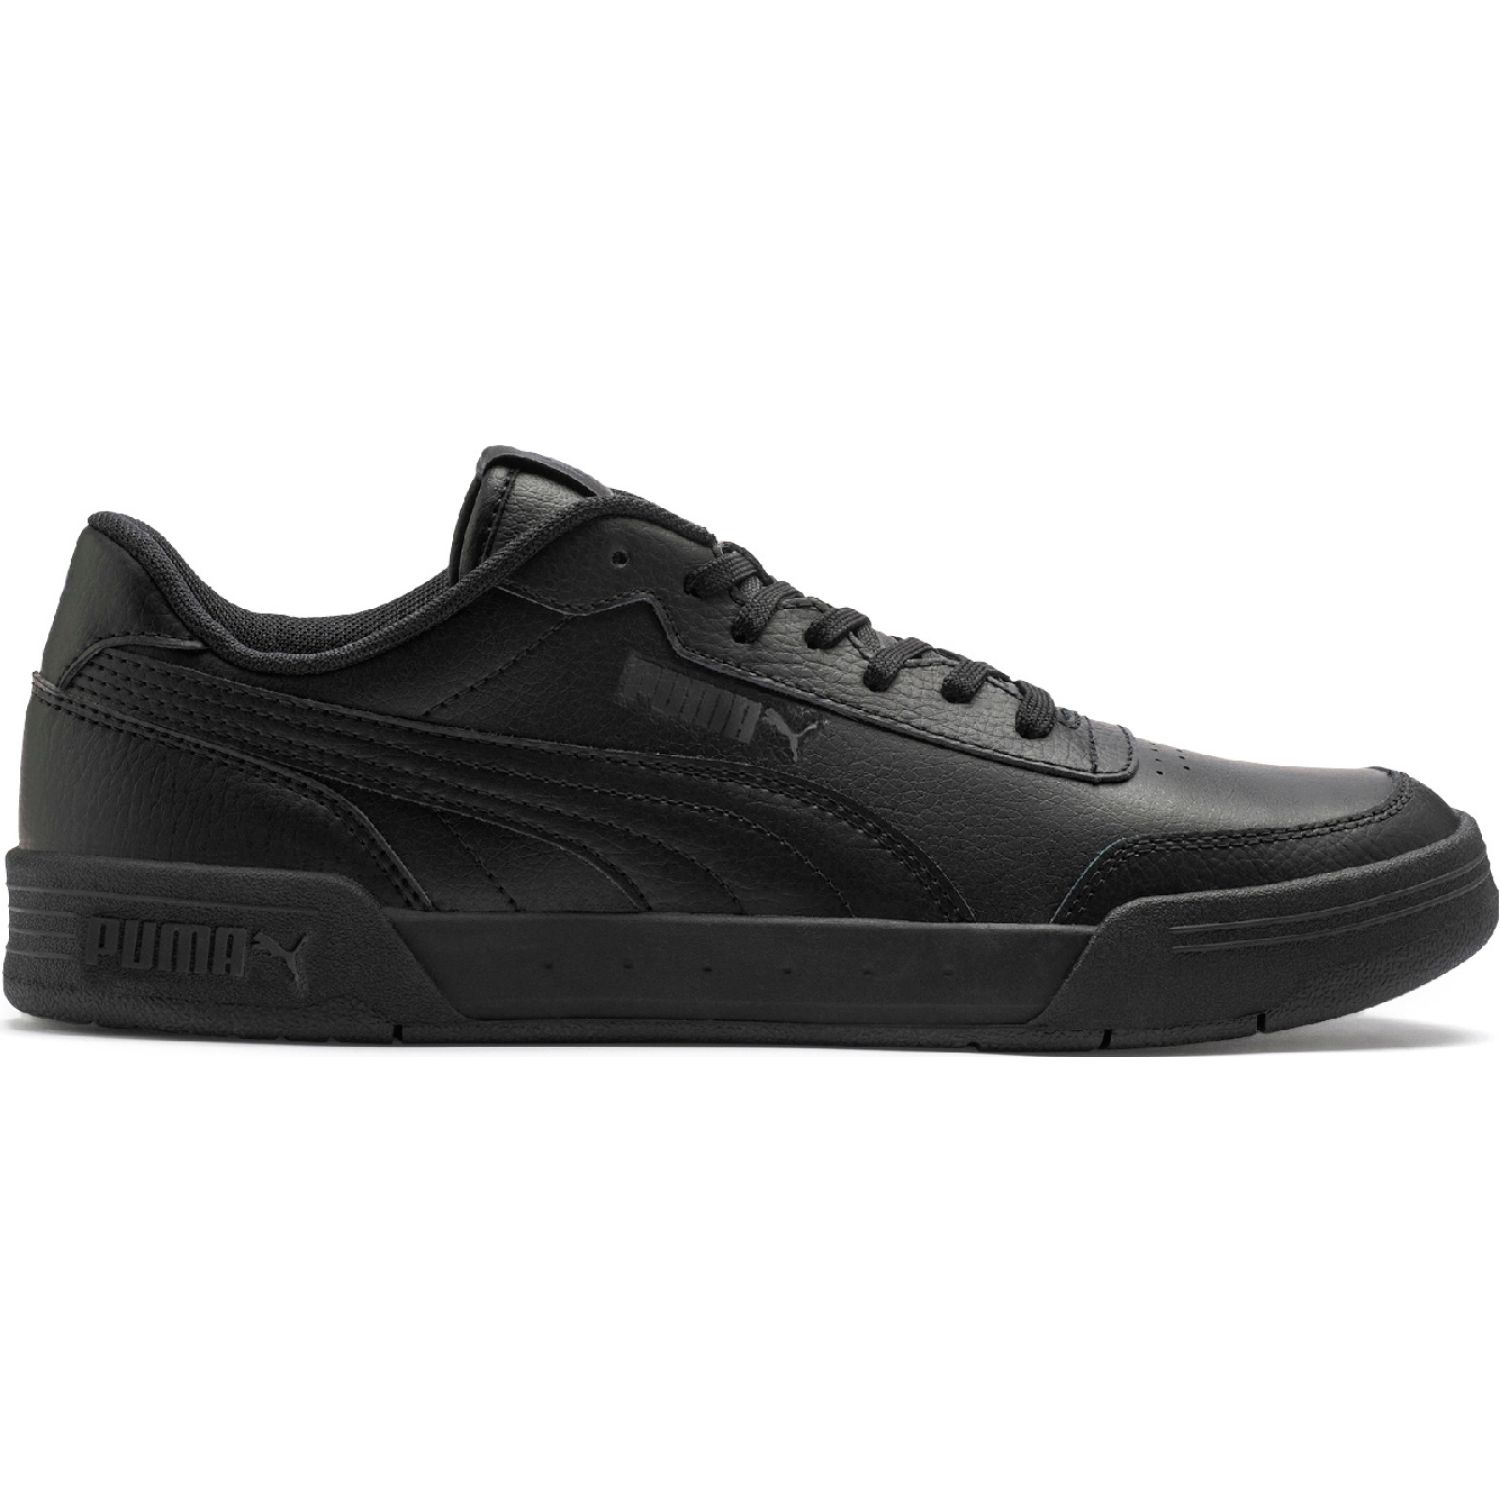 Puma caracal Negro Walking